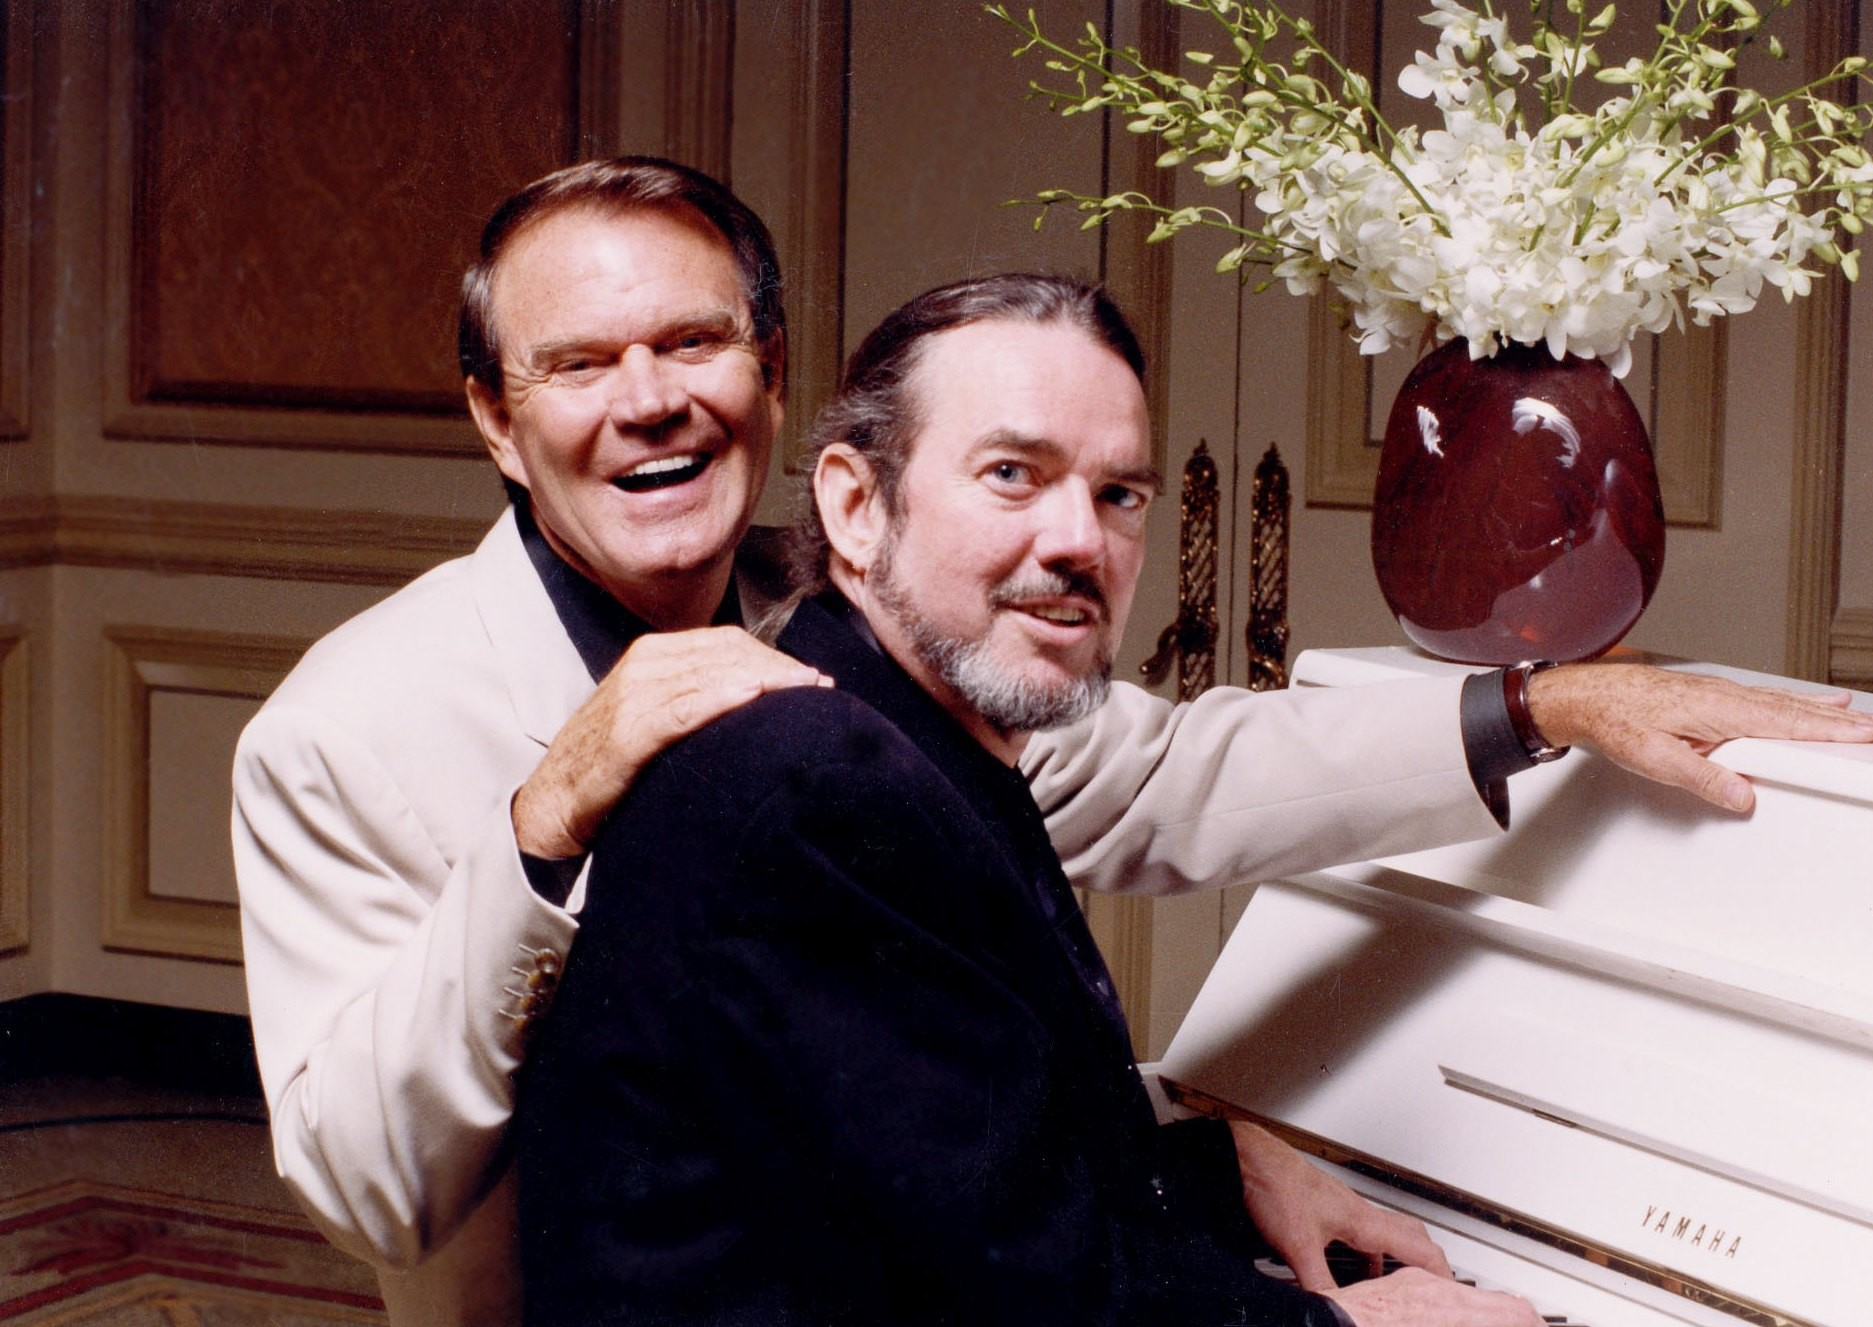 Glen Campbell with Jimmy Webb, who wrote many of Glen's major hits. This photo was taken in 2000 when they did several critically successful performances together at Feinstein's in the Regency Hotel, New York City.  They returned to Feinstein's in 2005.